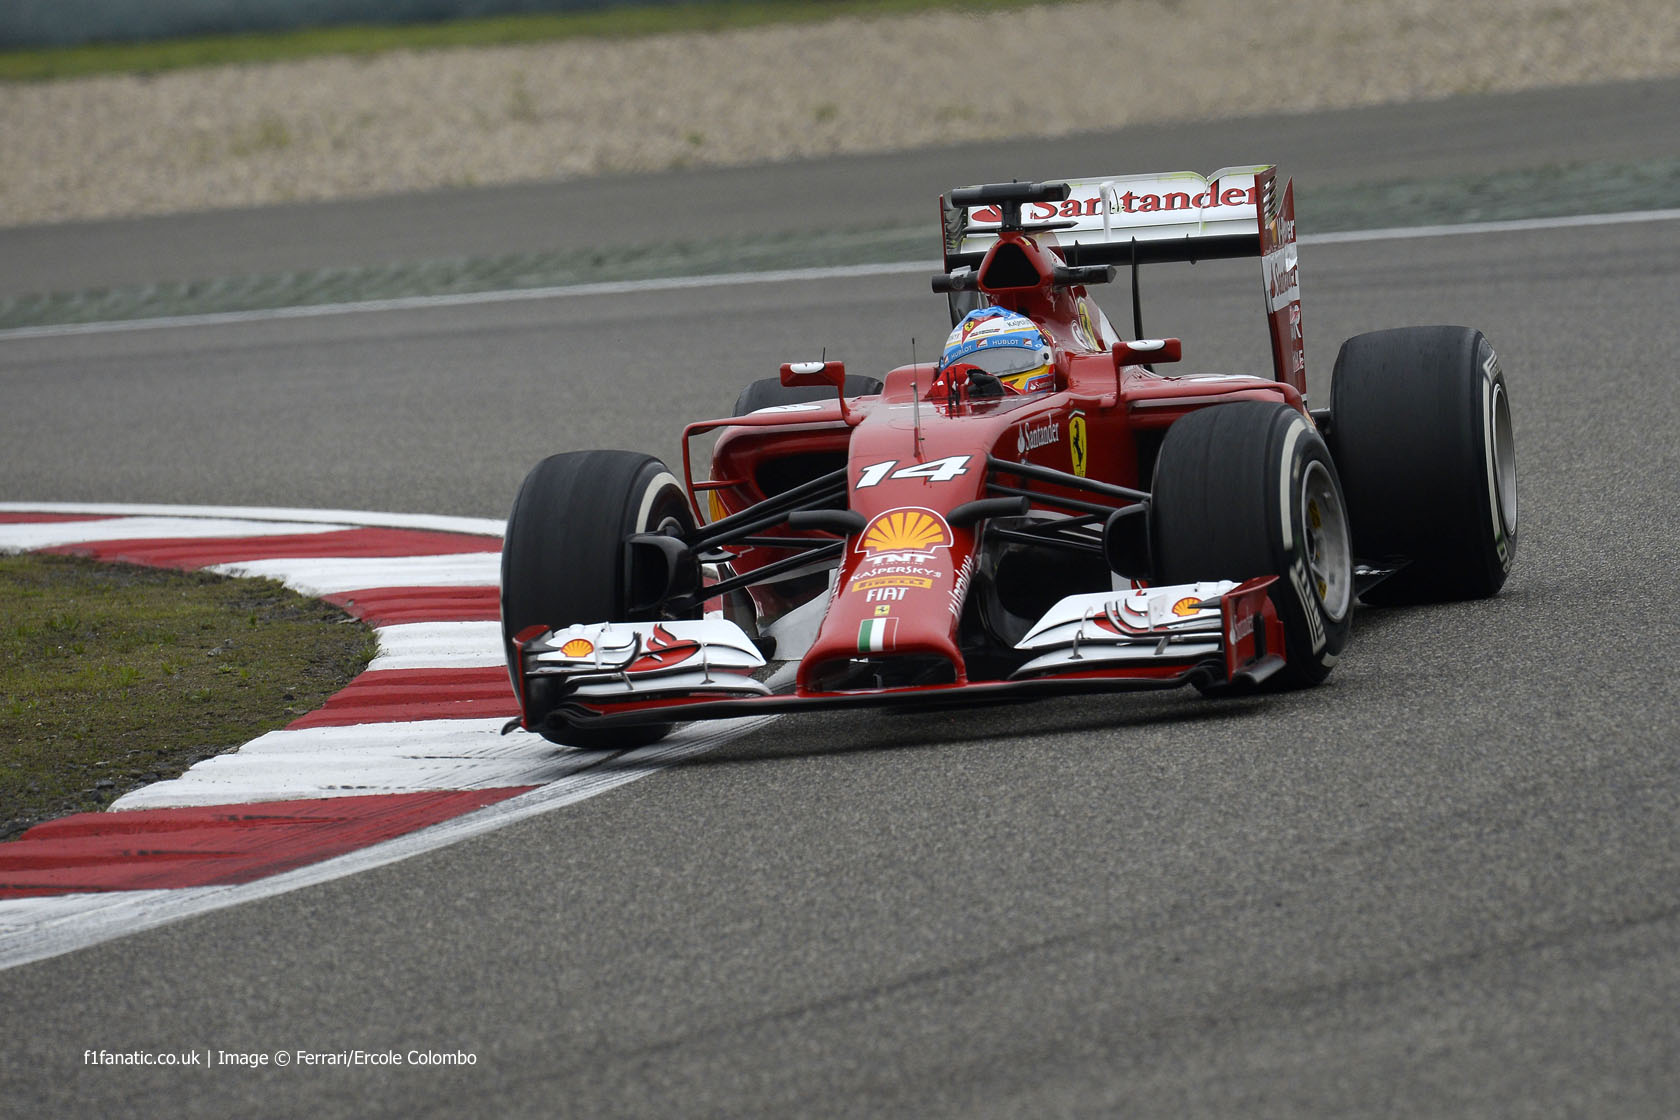 Fernando Alonso, Ferrari, Shanghai International Circuit, 2014